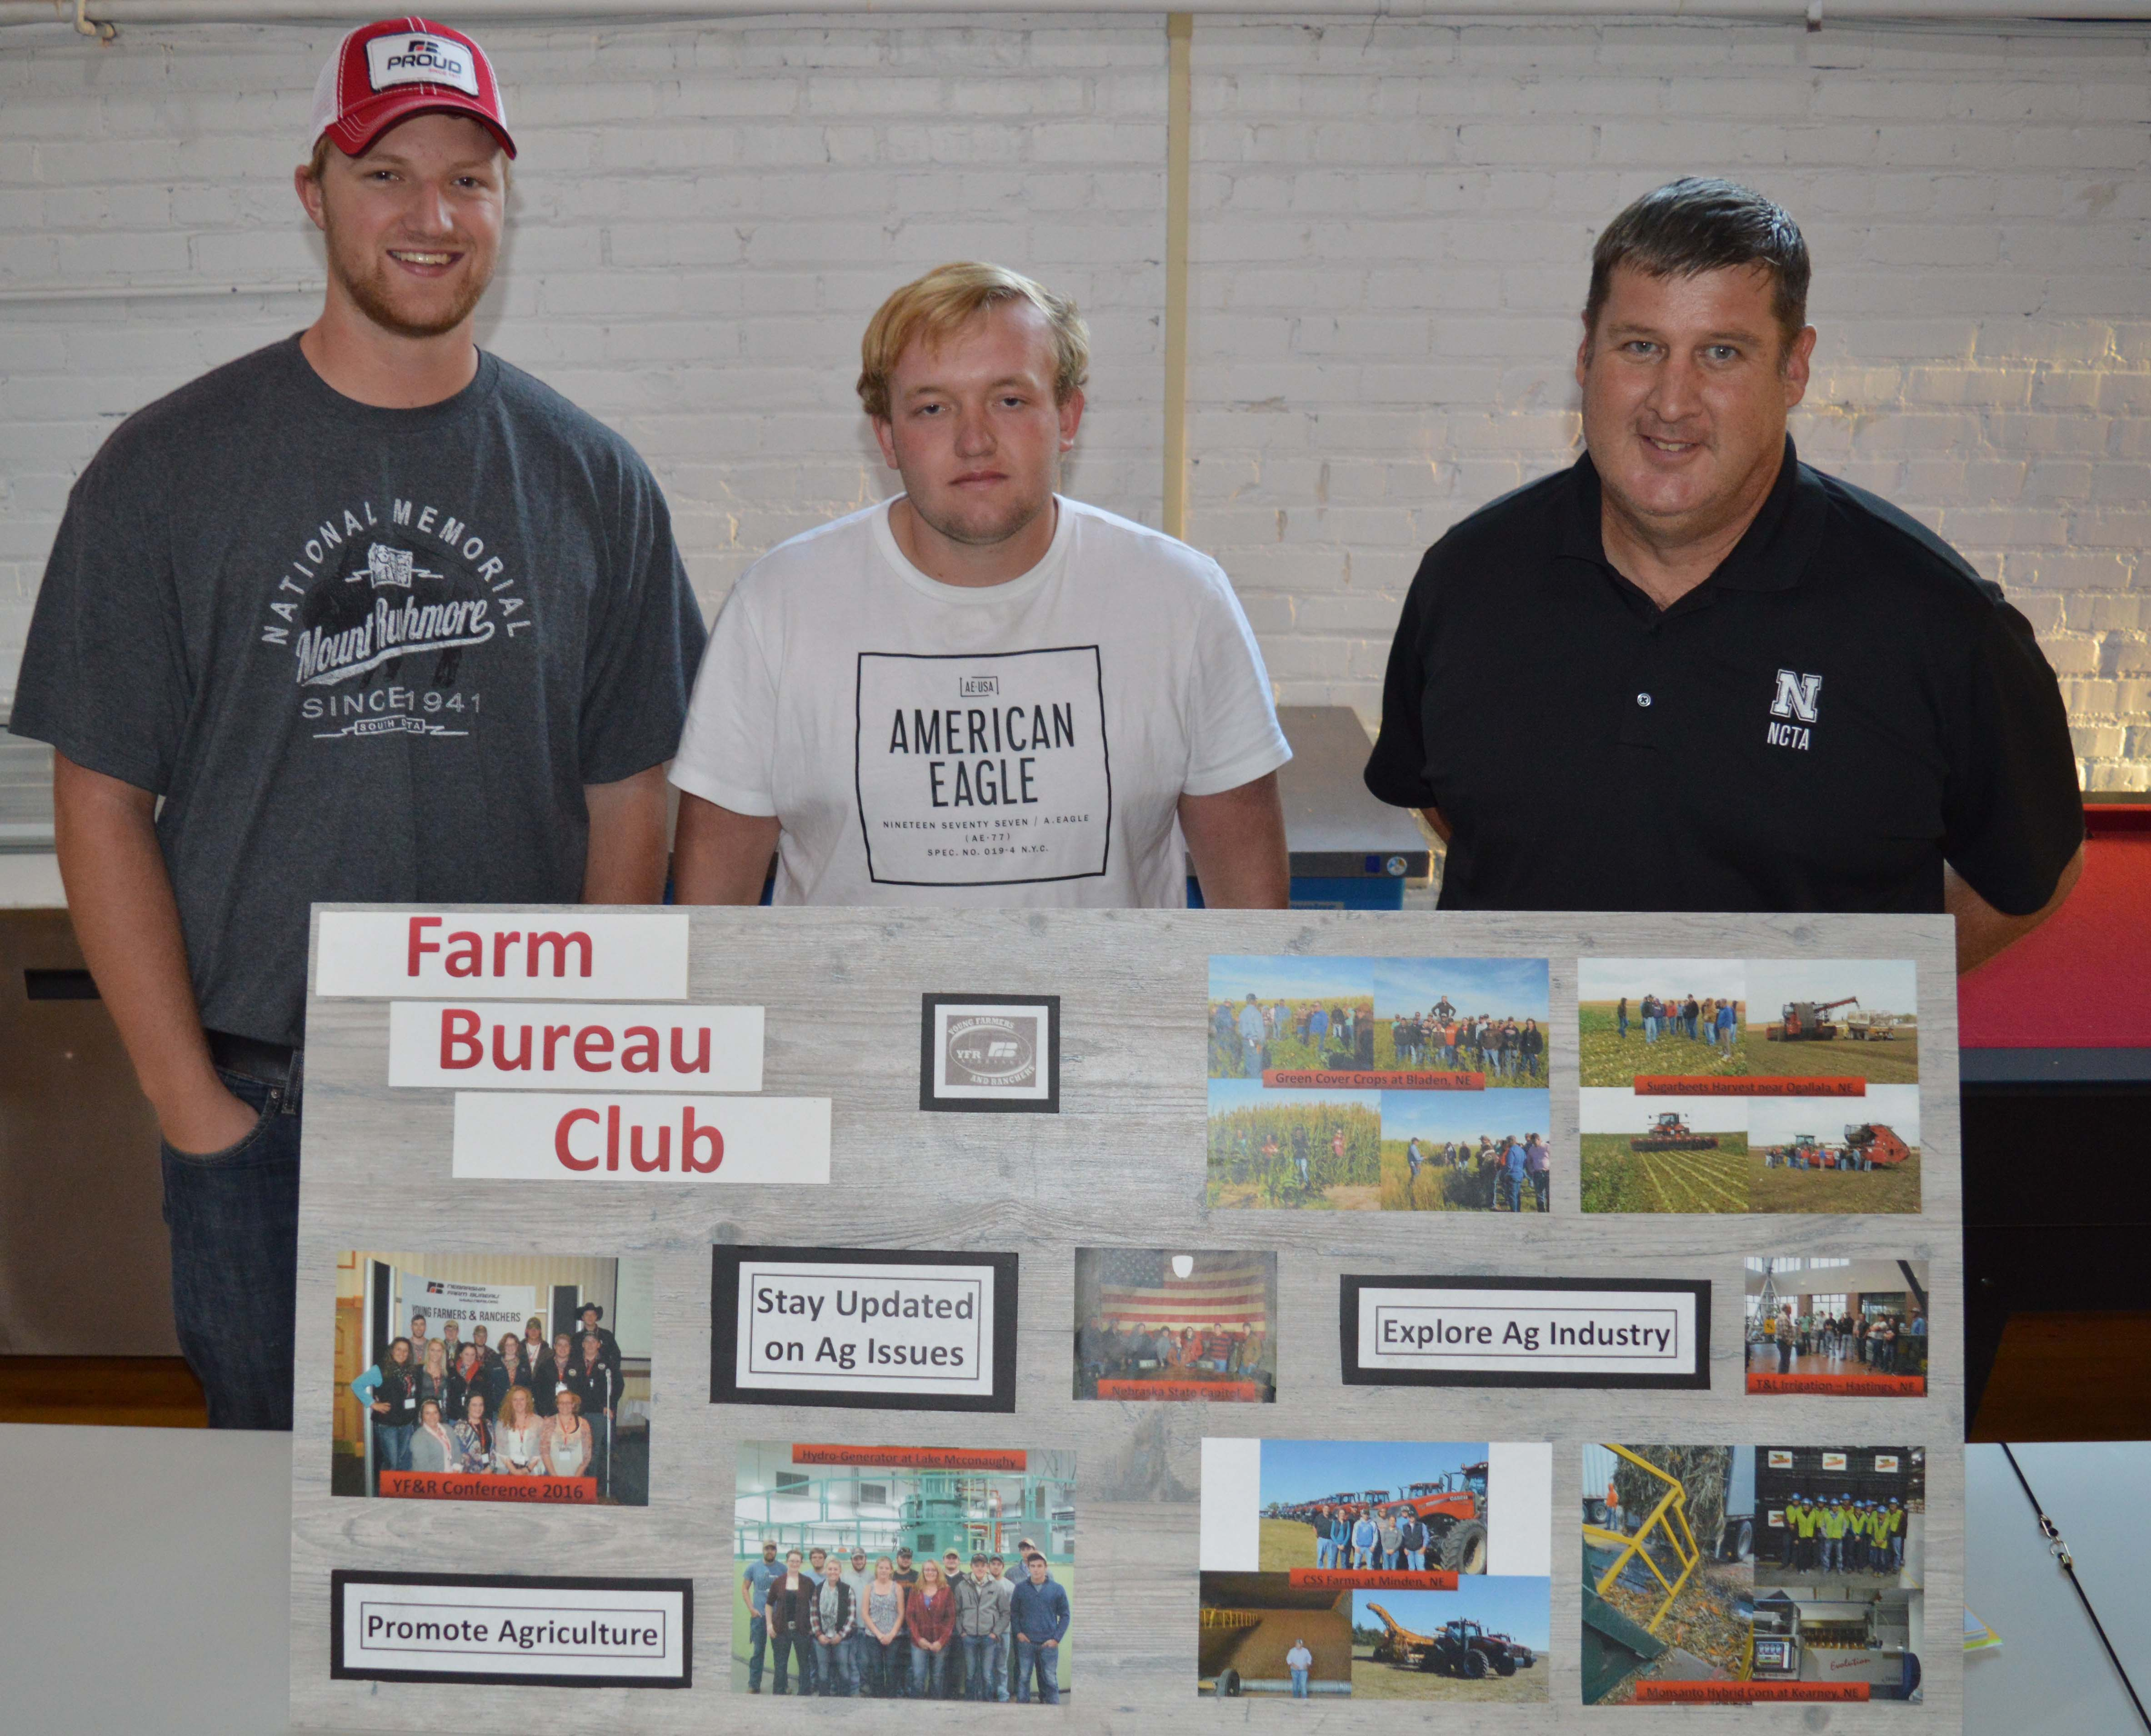 The NCTA college fair for clubs and organizations included the Collegiate Farm Bureau Club. (L-R) Clade Anderson of Otis, Kansas, Chase Callahan of Gothenburg and Professor Brad Ramsdale shared goals of the club to promote agriculture, stay updated on ag issues, and explore the ag industry. (Crawford/NCTA News photo)